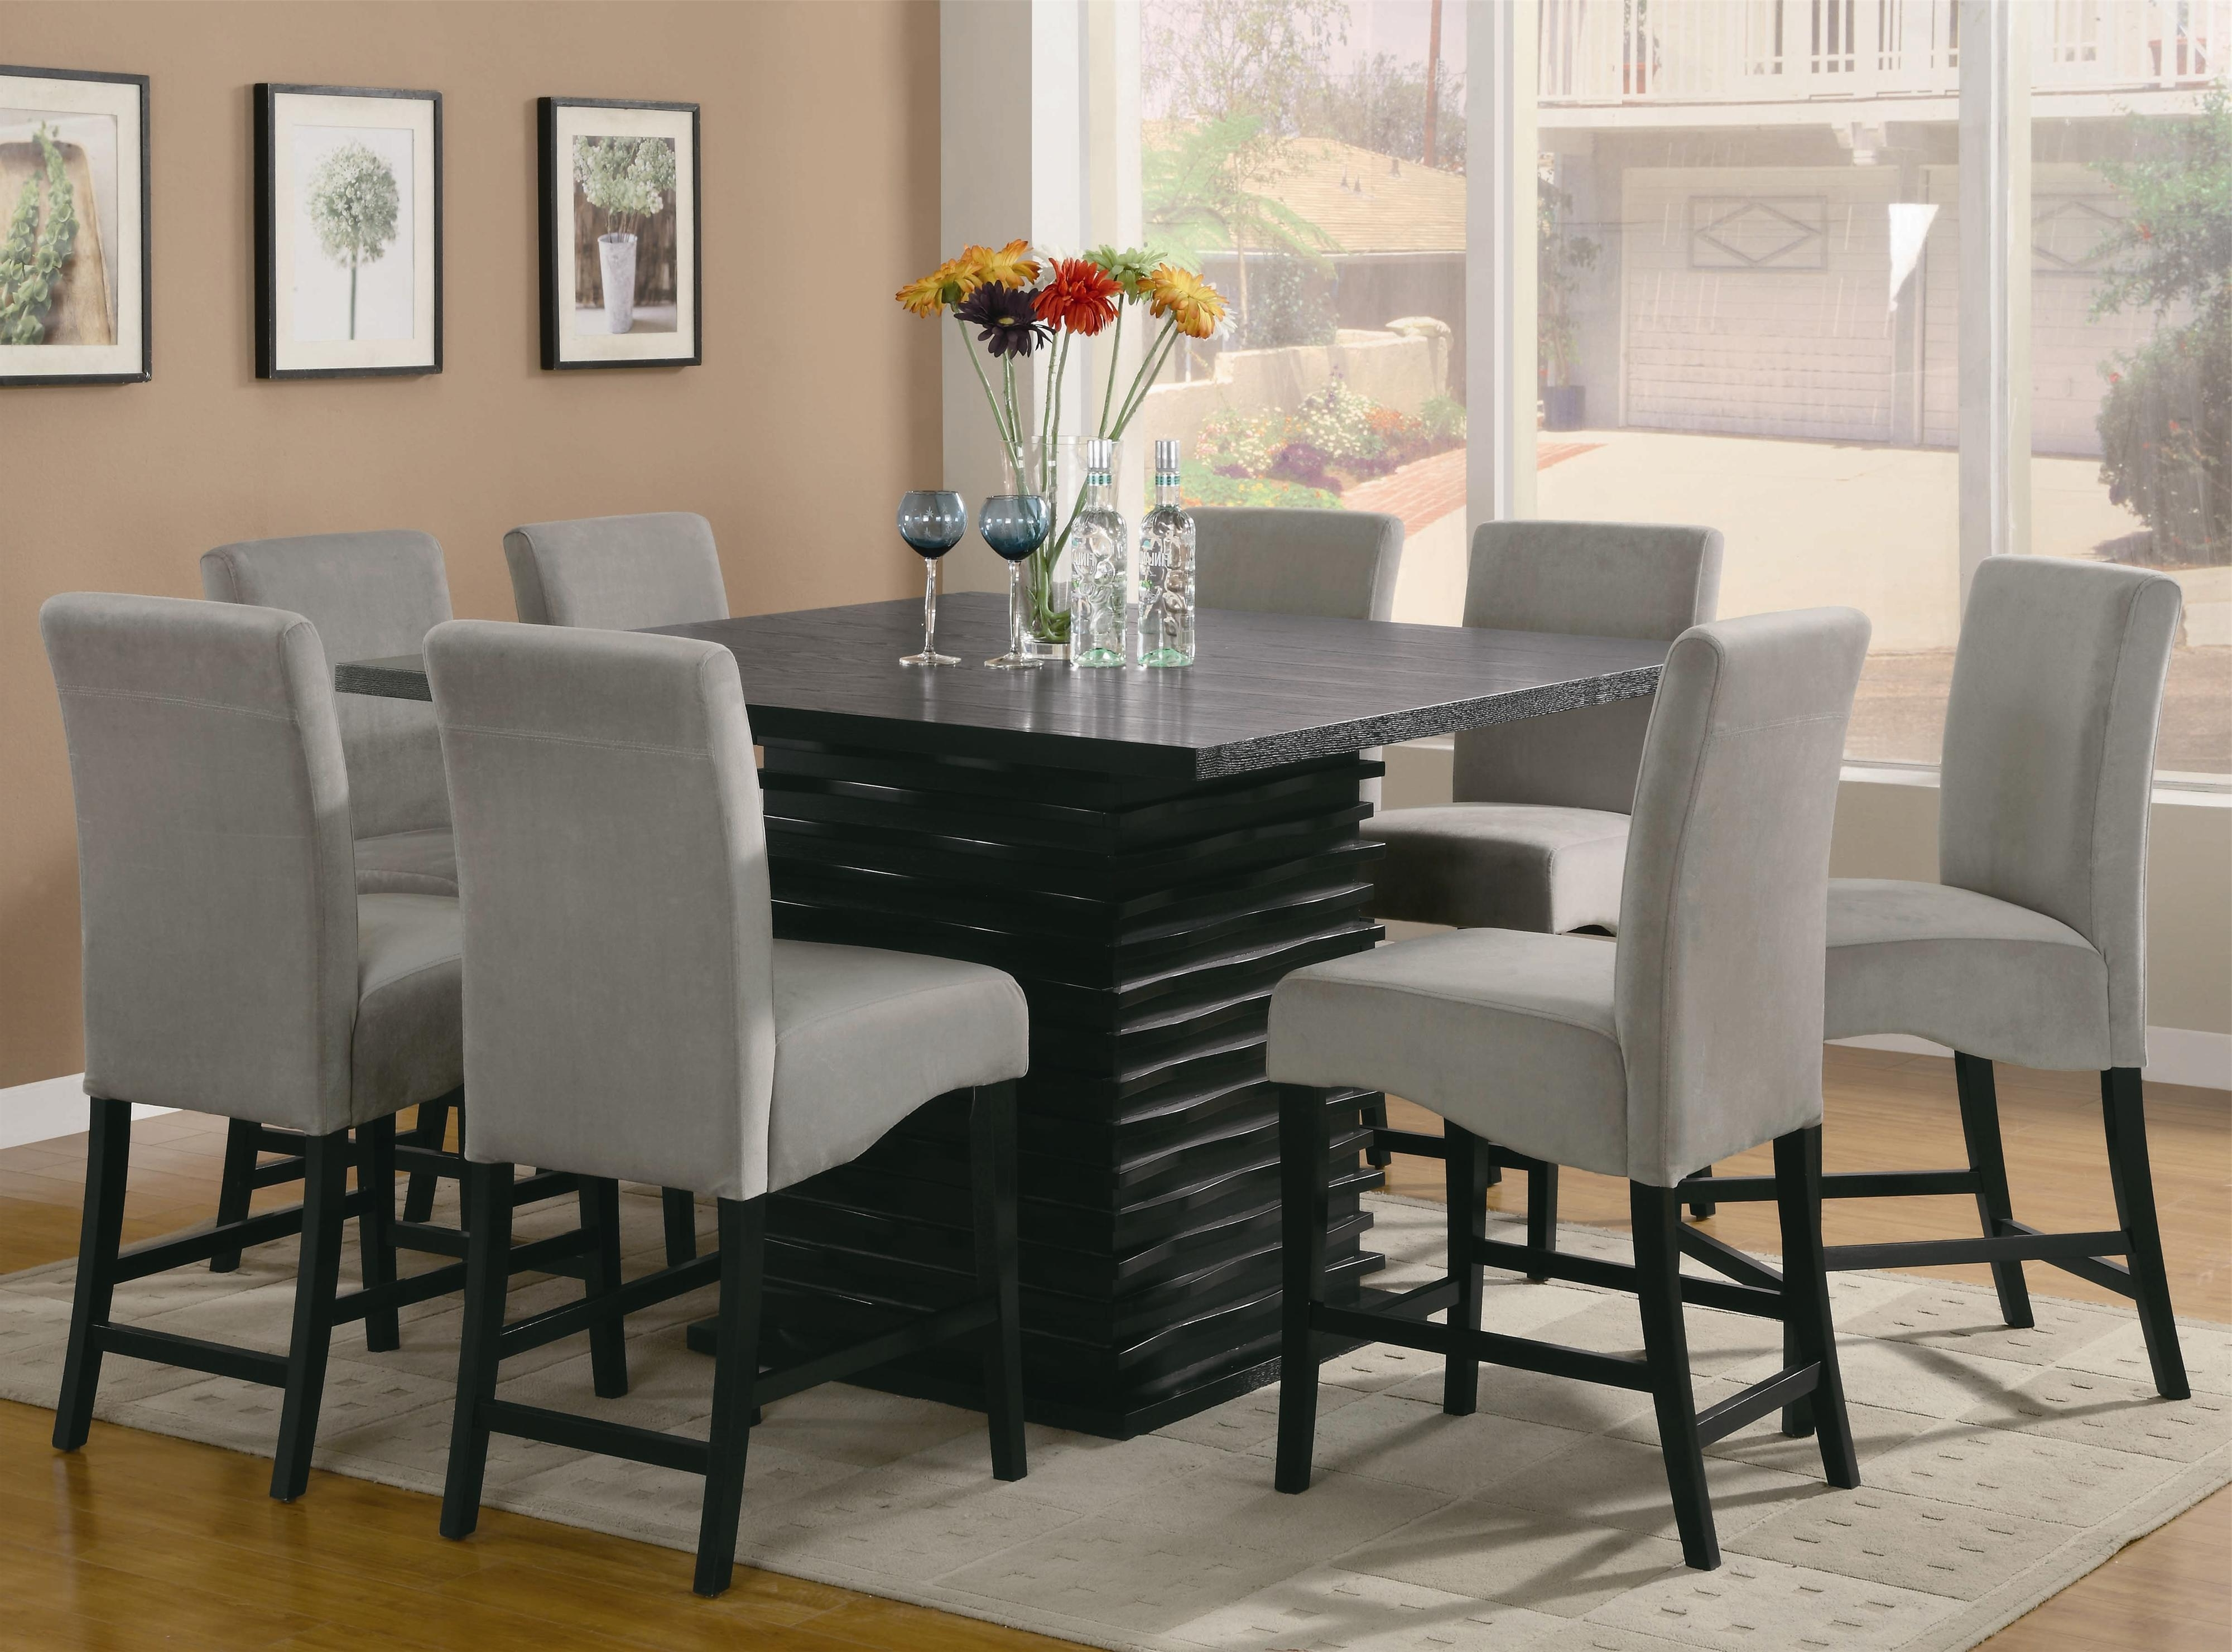 8 Chairs Dining Tables With Regard To Best And Newest Coaster Stanton 9 Piece Table And Chair Set (View 7 of 25)